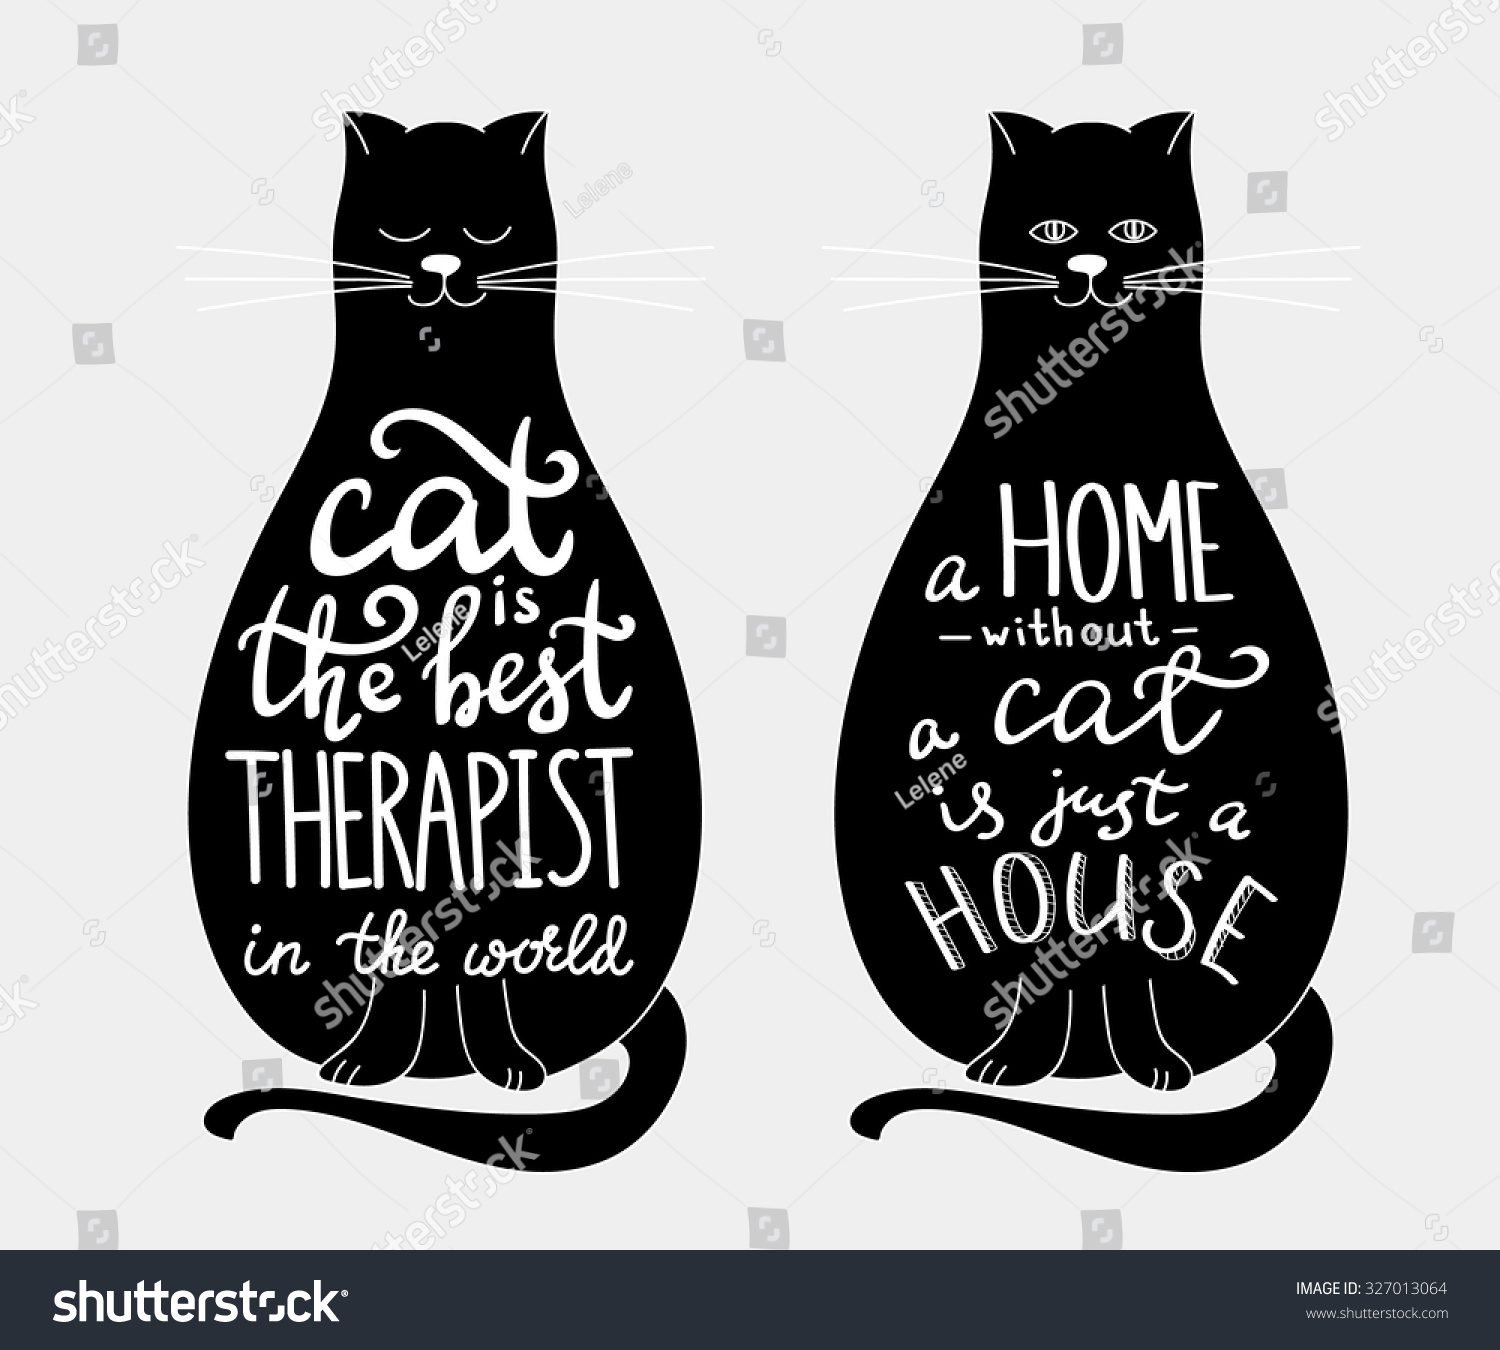 Cat Quotes Calligraphy Lettering Set On Black Cats